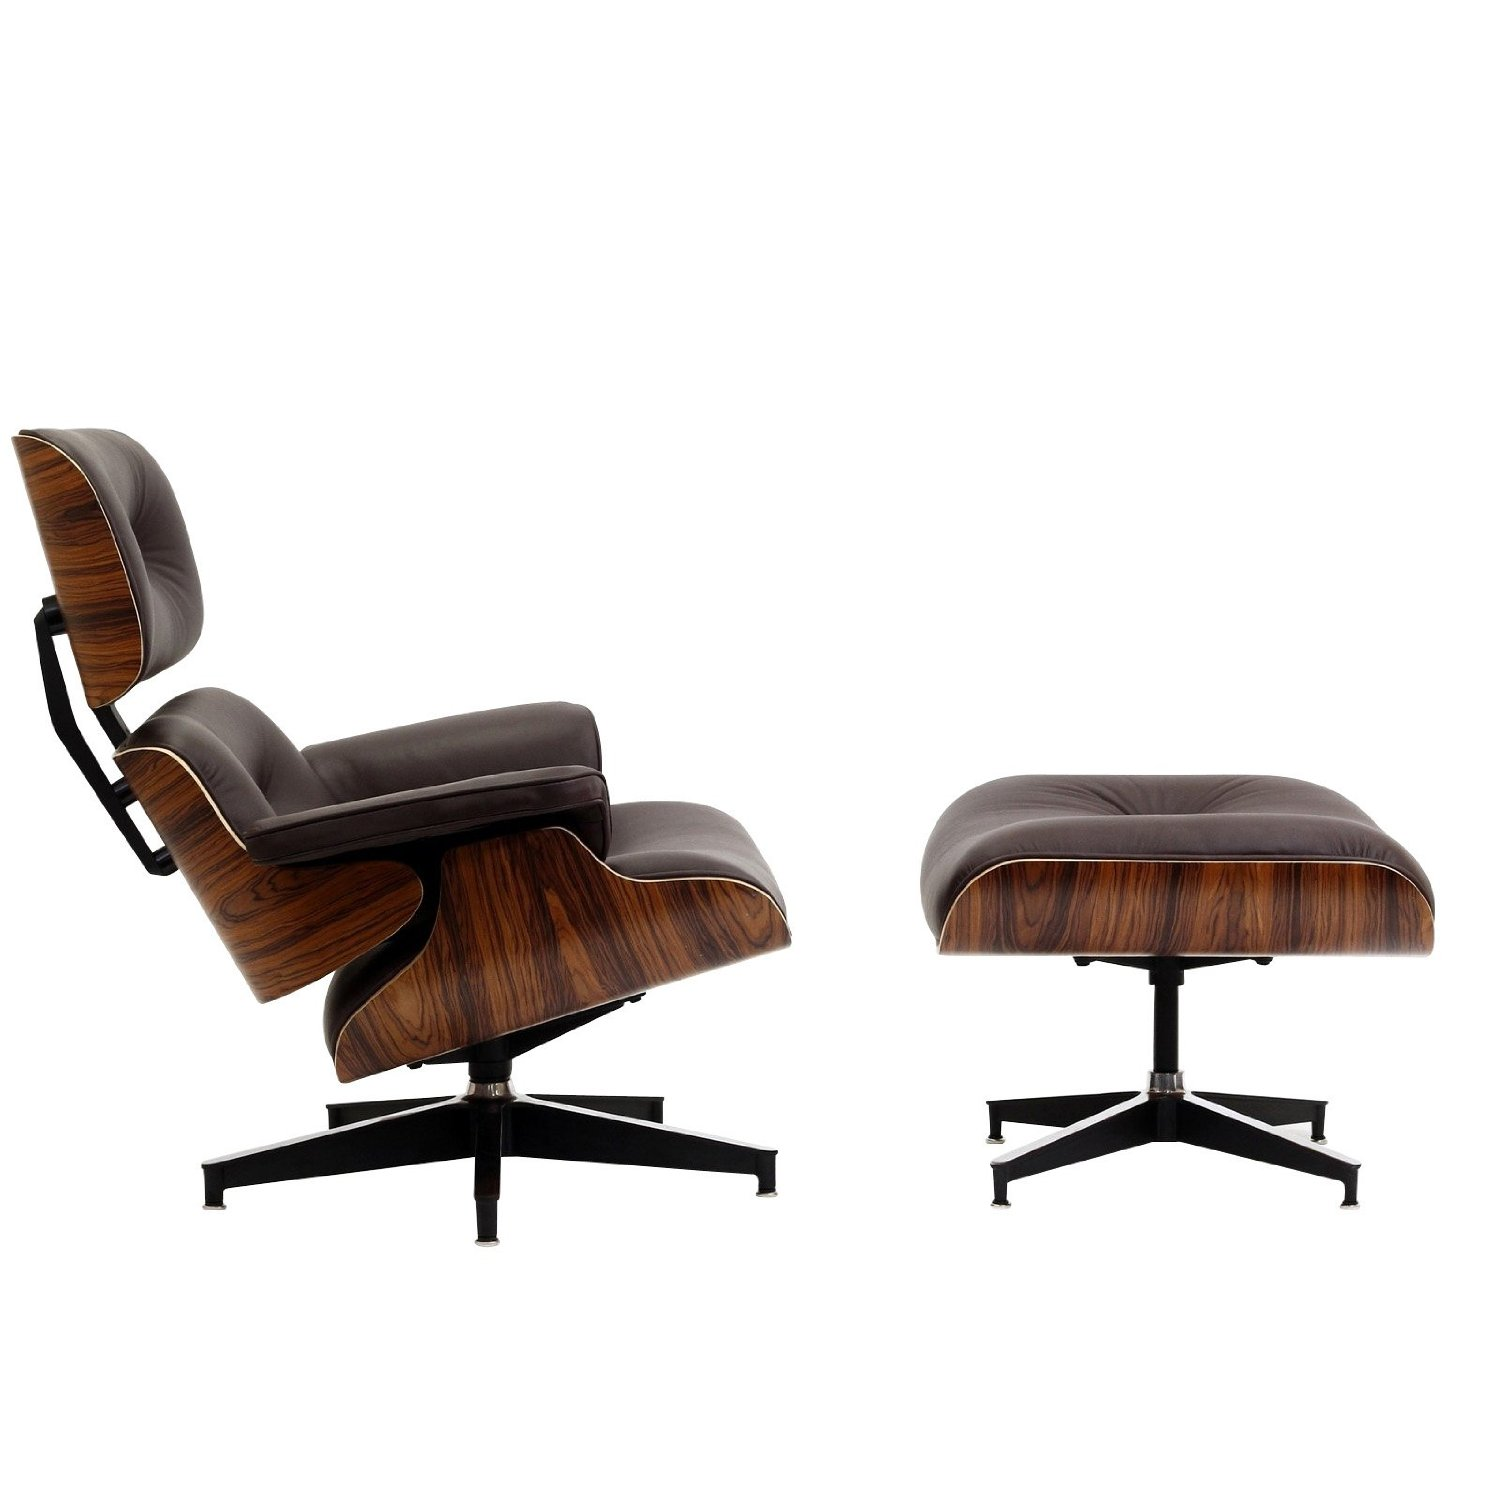 Eames Lounge Chair And Ottoman Palisander Wood Italian Leather Cross Grai